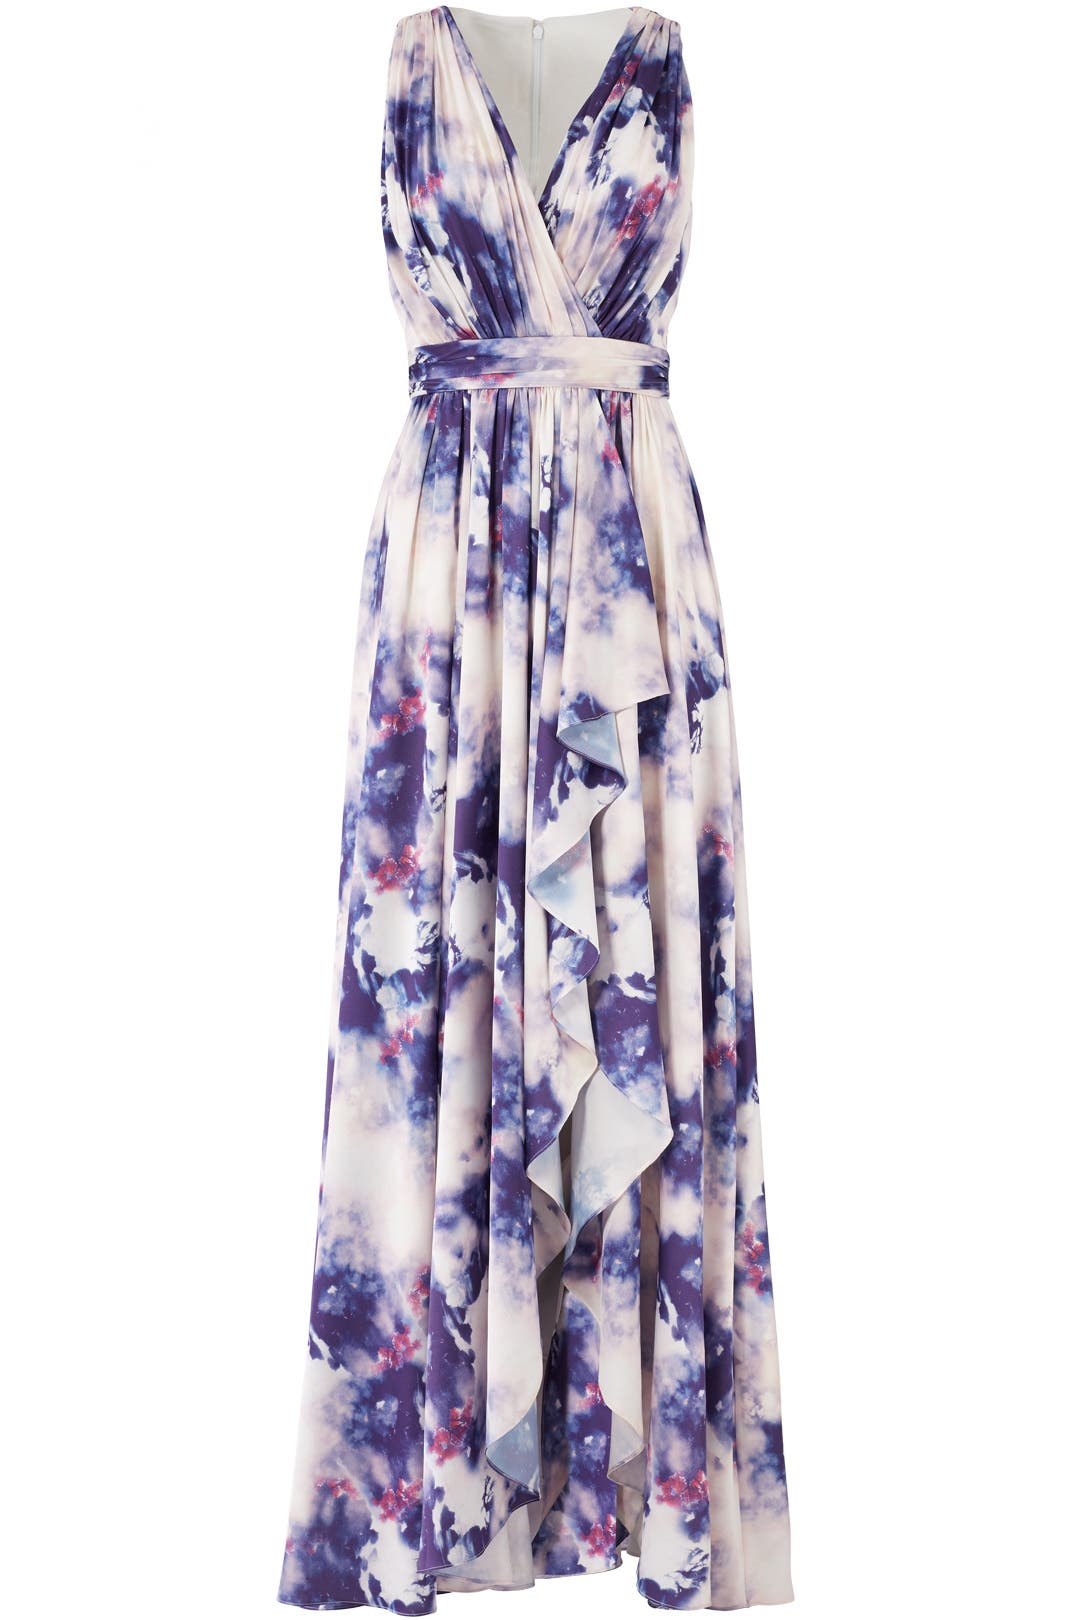 Purple Cloud Printed Maxi by Badgley Mischka for $105 - $115 | Rent ...